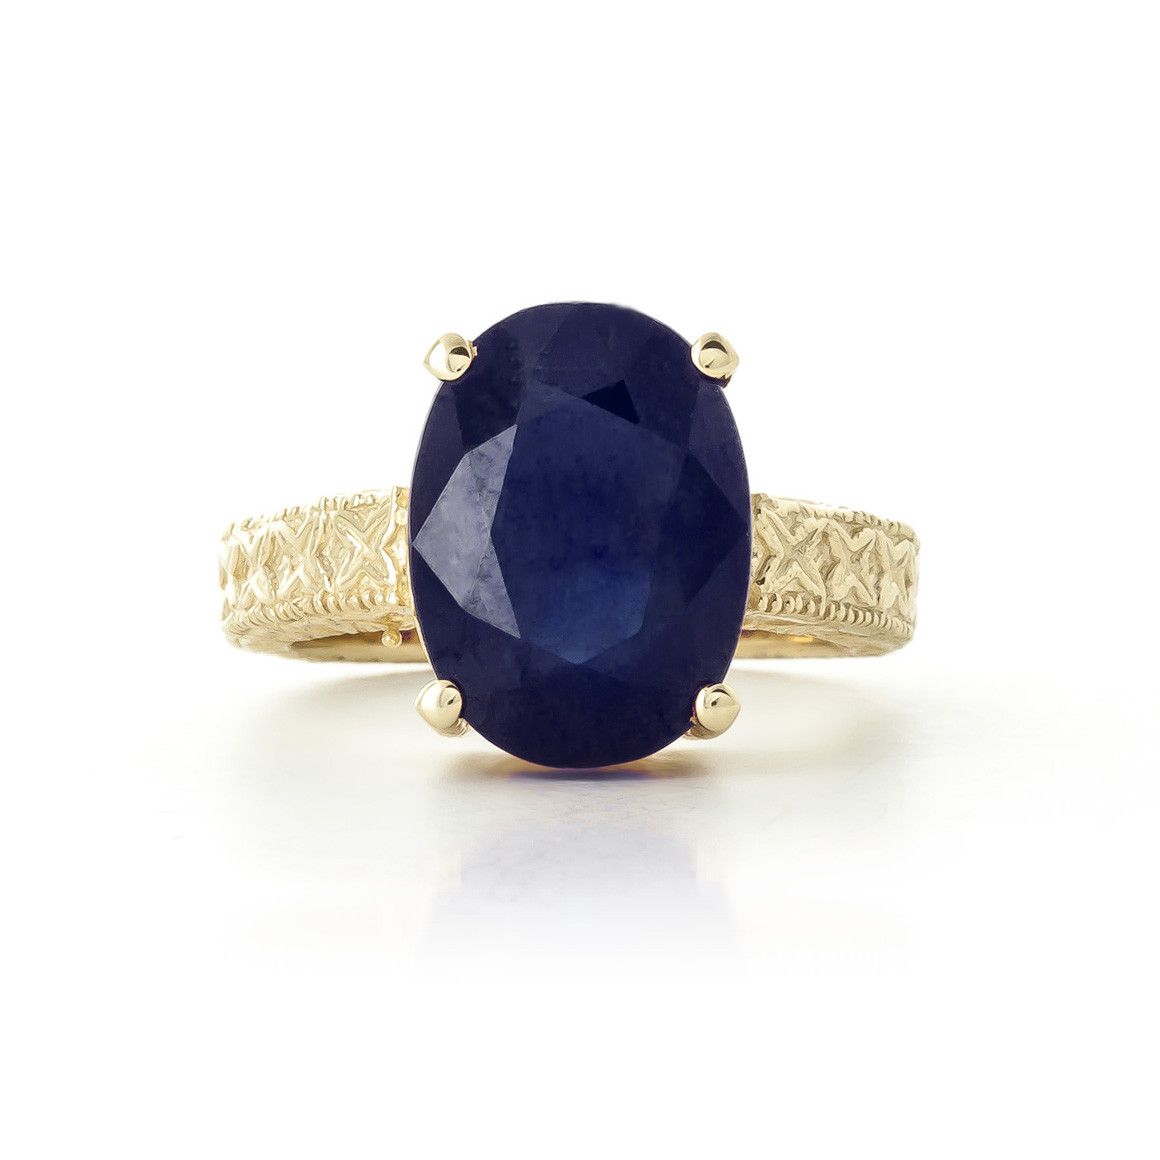 Oval Cut Sapphire Ring 8.5 ct in 9ct Gold